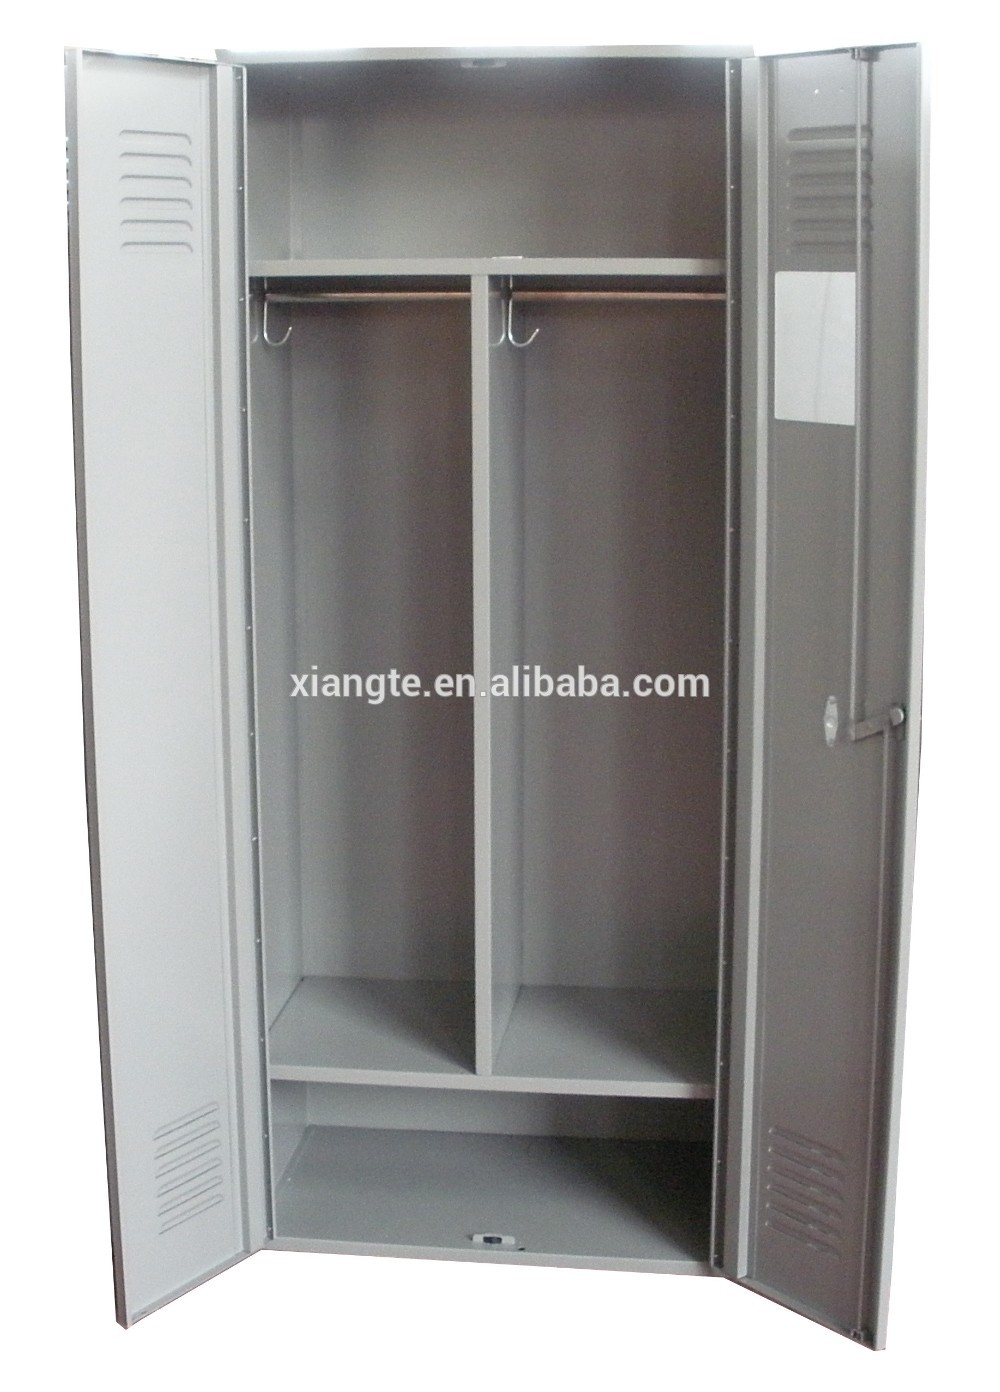 Modern Design Metal Wardrobessunmica Designs For Wardrobe Buy Within Metal Wardrobes (View 9 of 25)